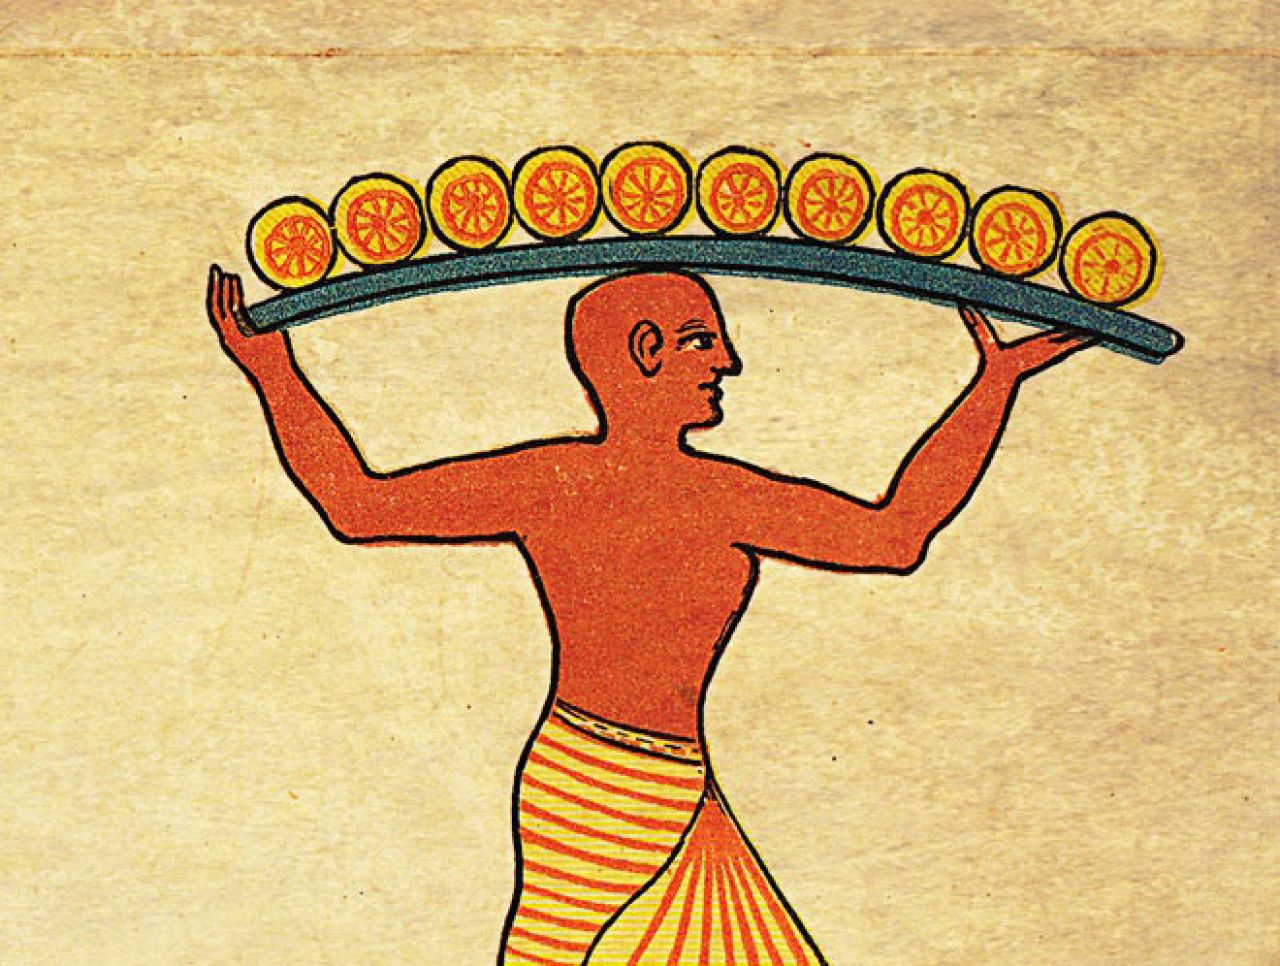 Bread in ancient Egypt